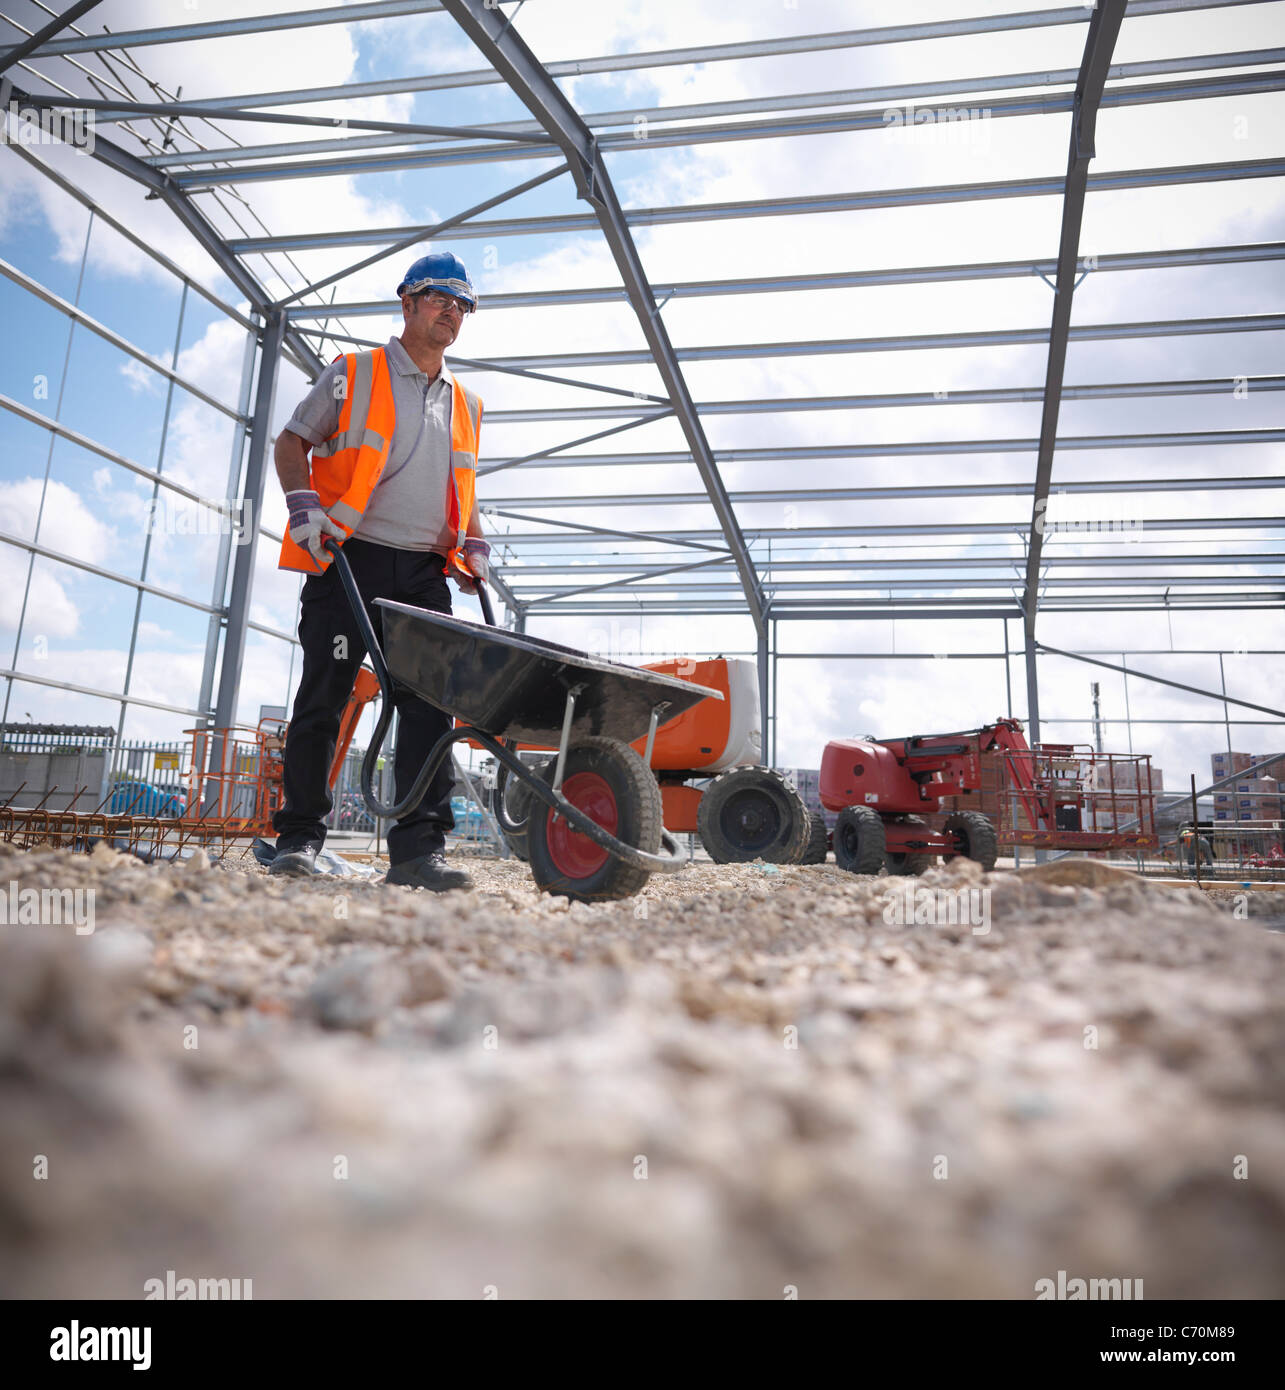 Construction worker with wheelbarrow - Stock Image